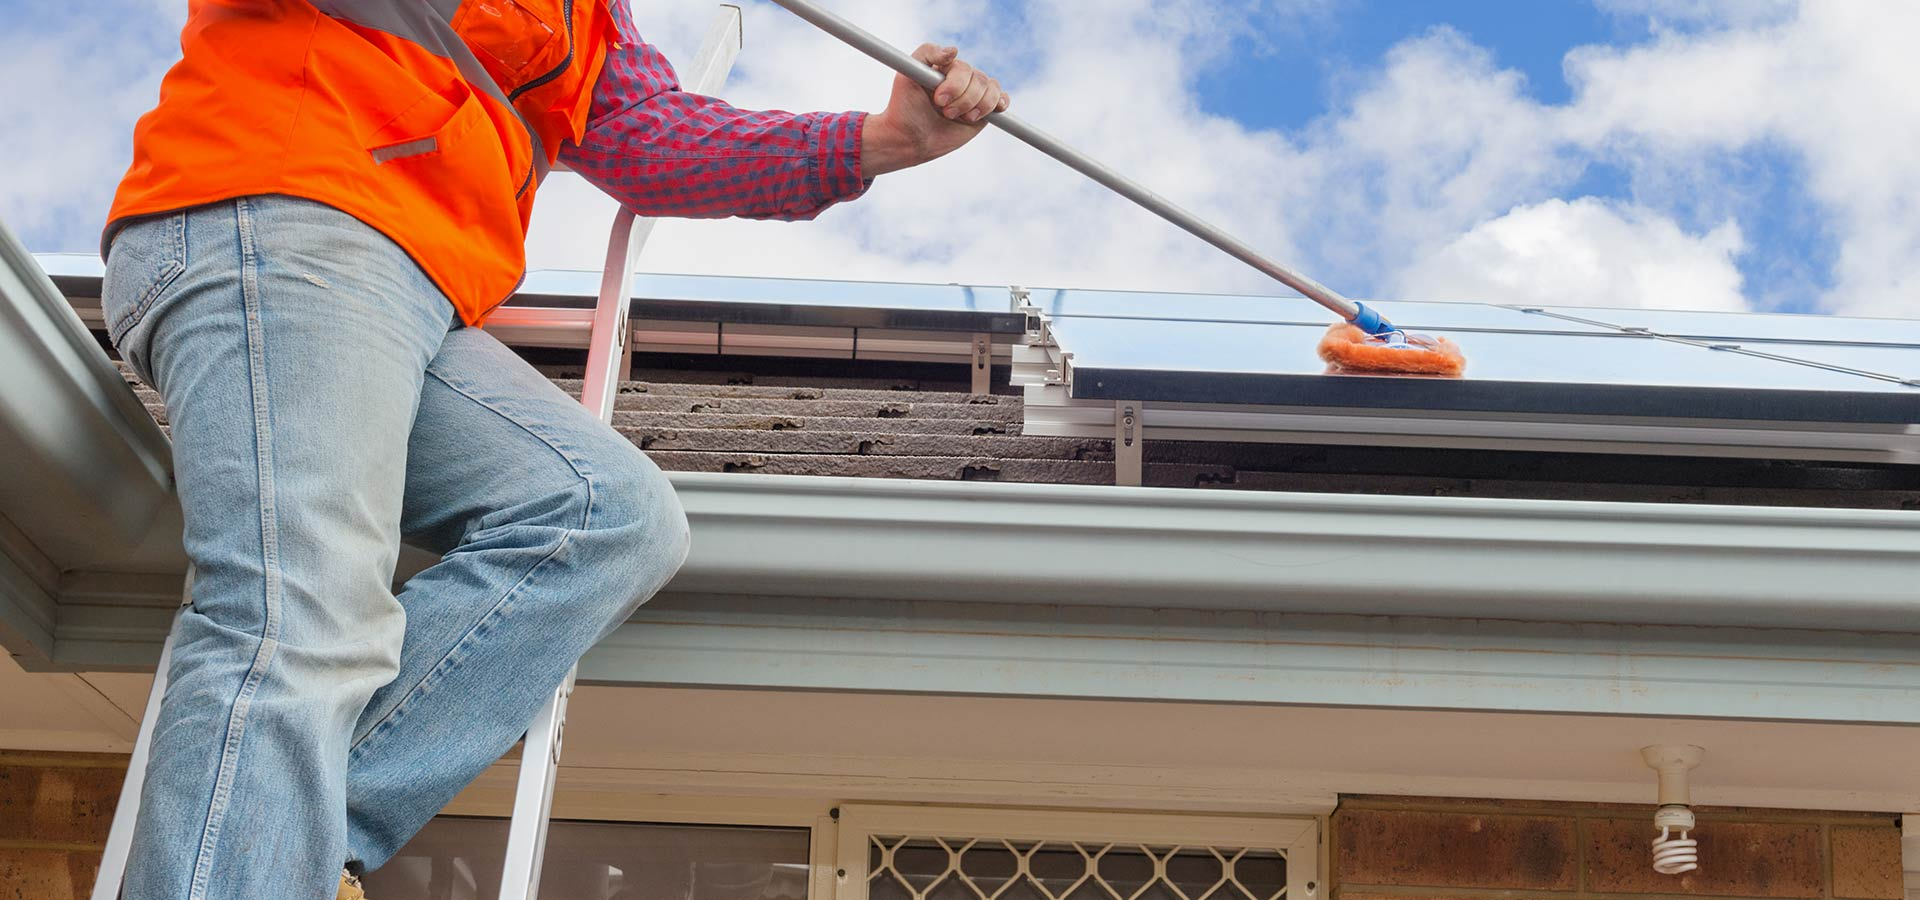 WINDOW & SOLAR PANEL CLEANING SERVICES IN WAGGA WAGGA